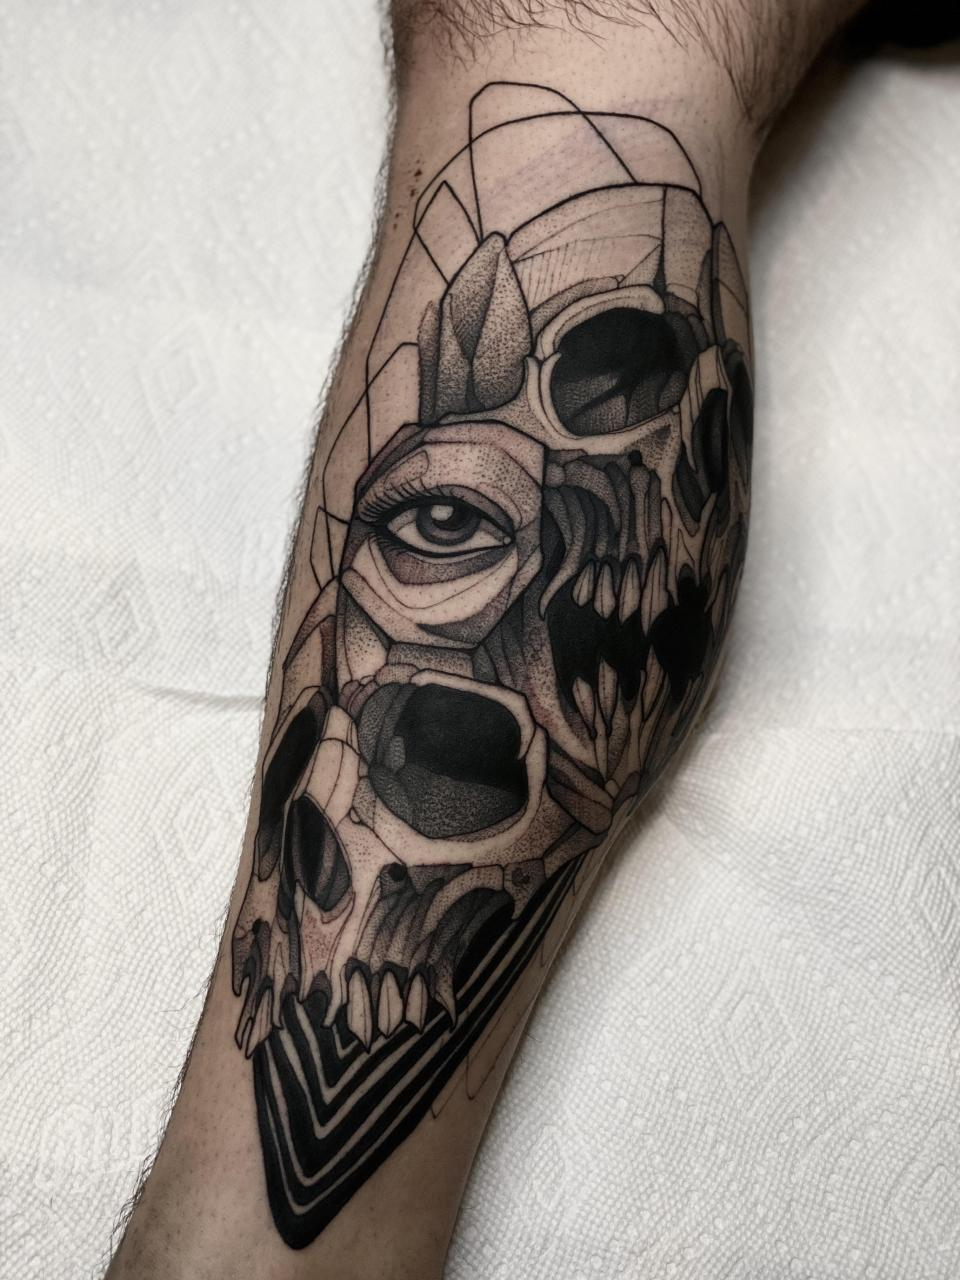 Fractal skull calf piece done by Max LaCroix at Akara Arts in Milwaukee, WI